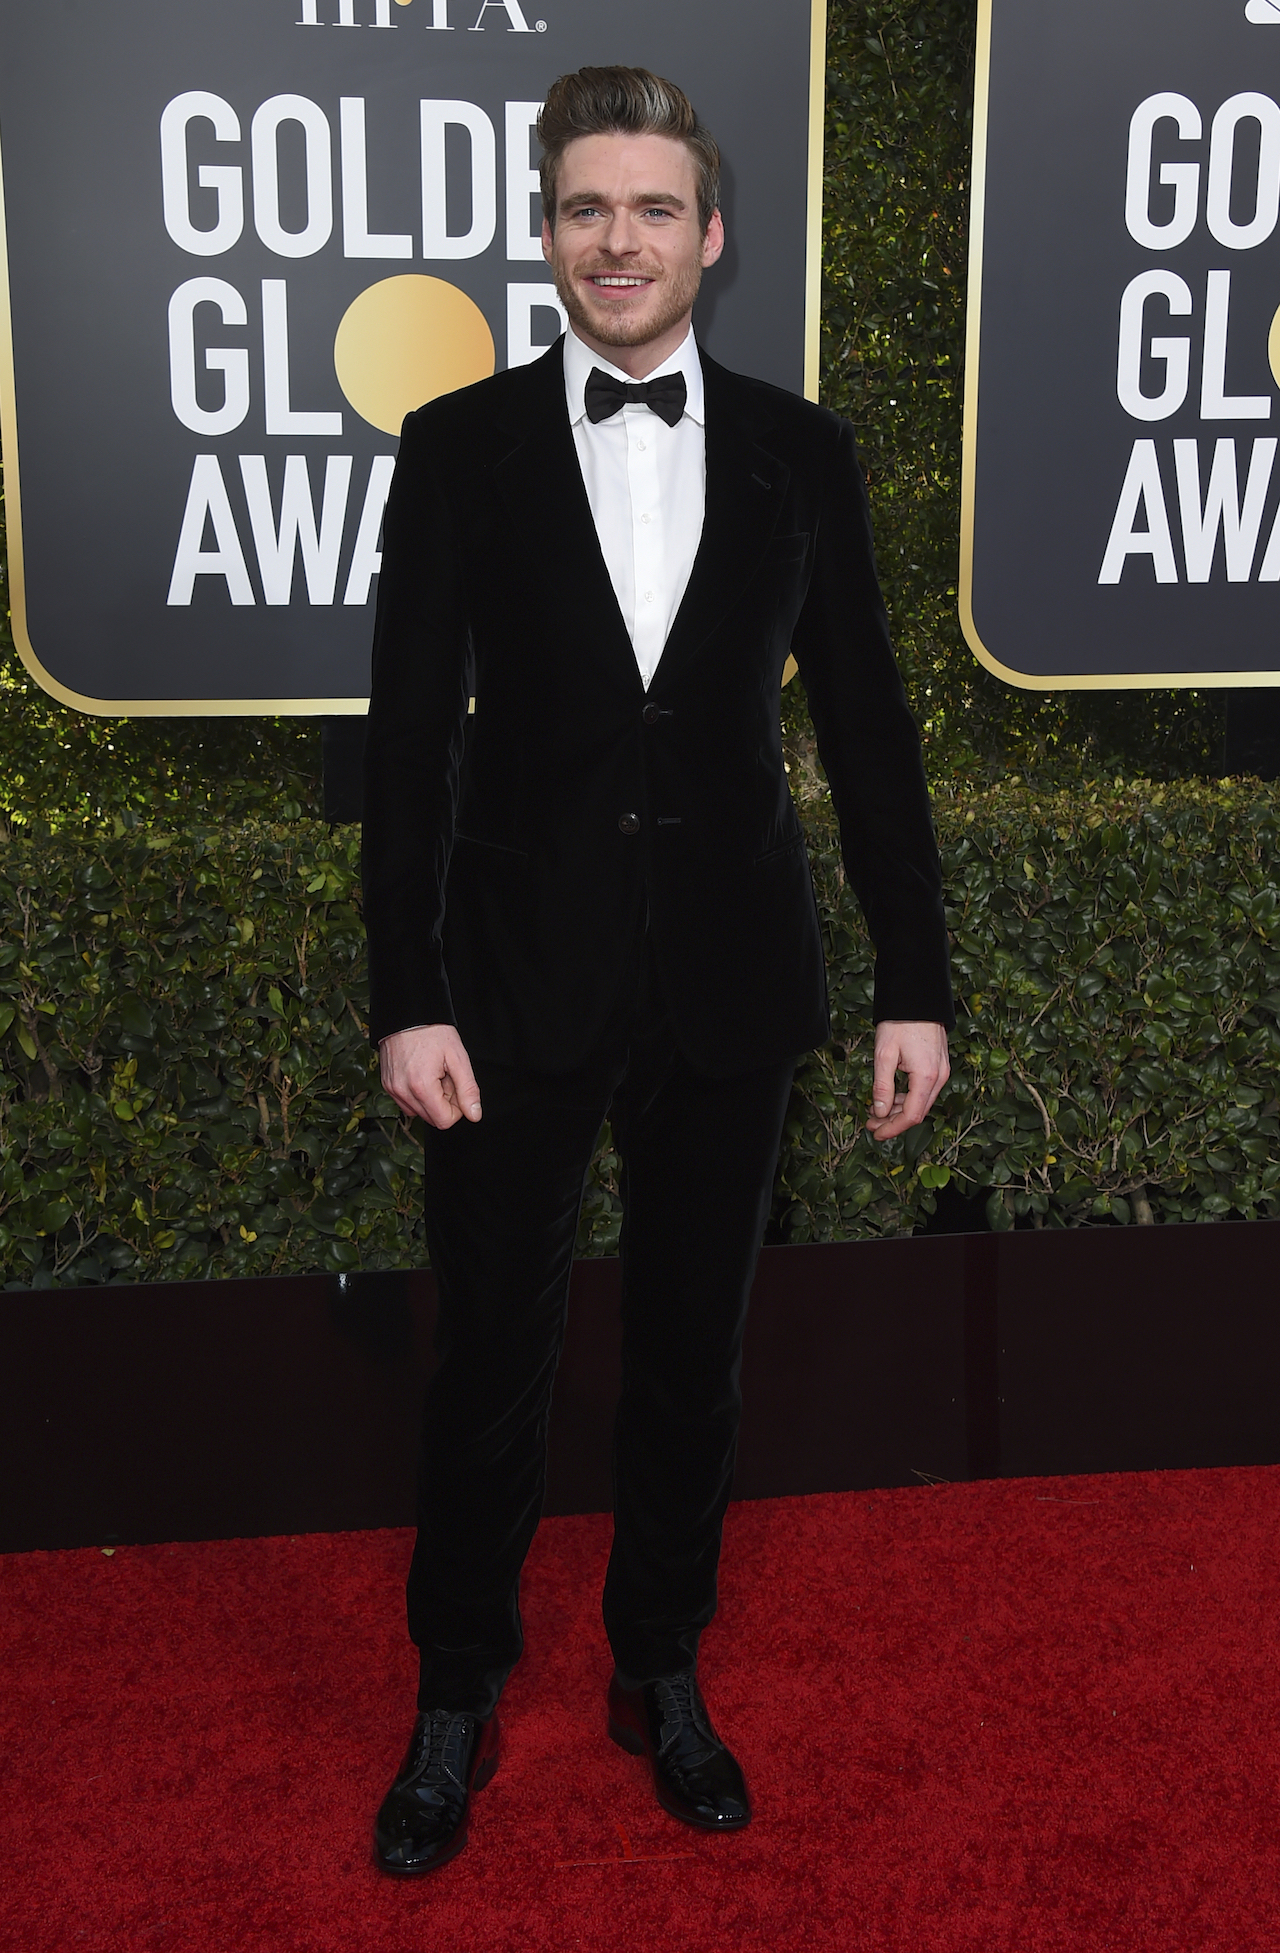 <div class='meta'><div class='origin-logo' data-origin='AP'></div><span class='caption-text' data-credit='Jordan Strauss/Invision/AP'>Richard Madden arrives at the 76th annual Golden Globe Awards at the Beverly Hilton Hotel on Sunday, Jan. 6, 2019, in Beverly Hills, Calif. (Photo by Jordan Strauss/Invision/AP)</span></div>